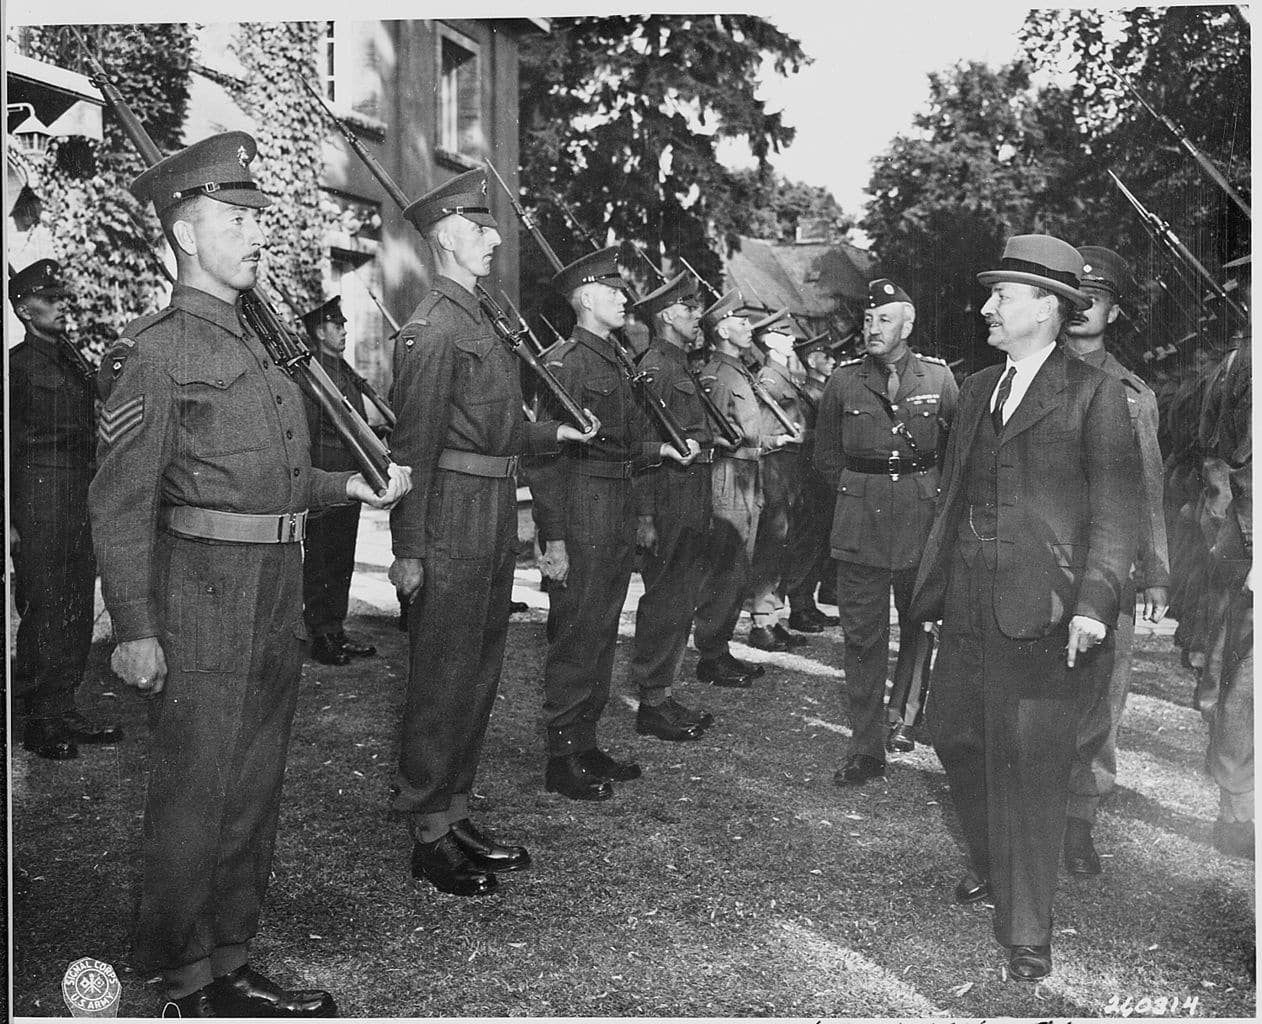 The Potsdam Conference - July 28th 1945 - UK Prime Minister Clement Attlee inspects the honour guards consisting of Scots Guards on the lawn of his villa